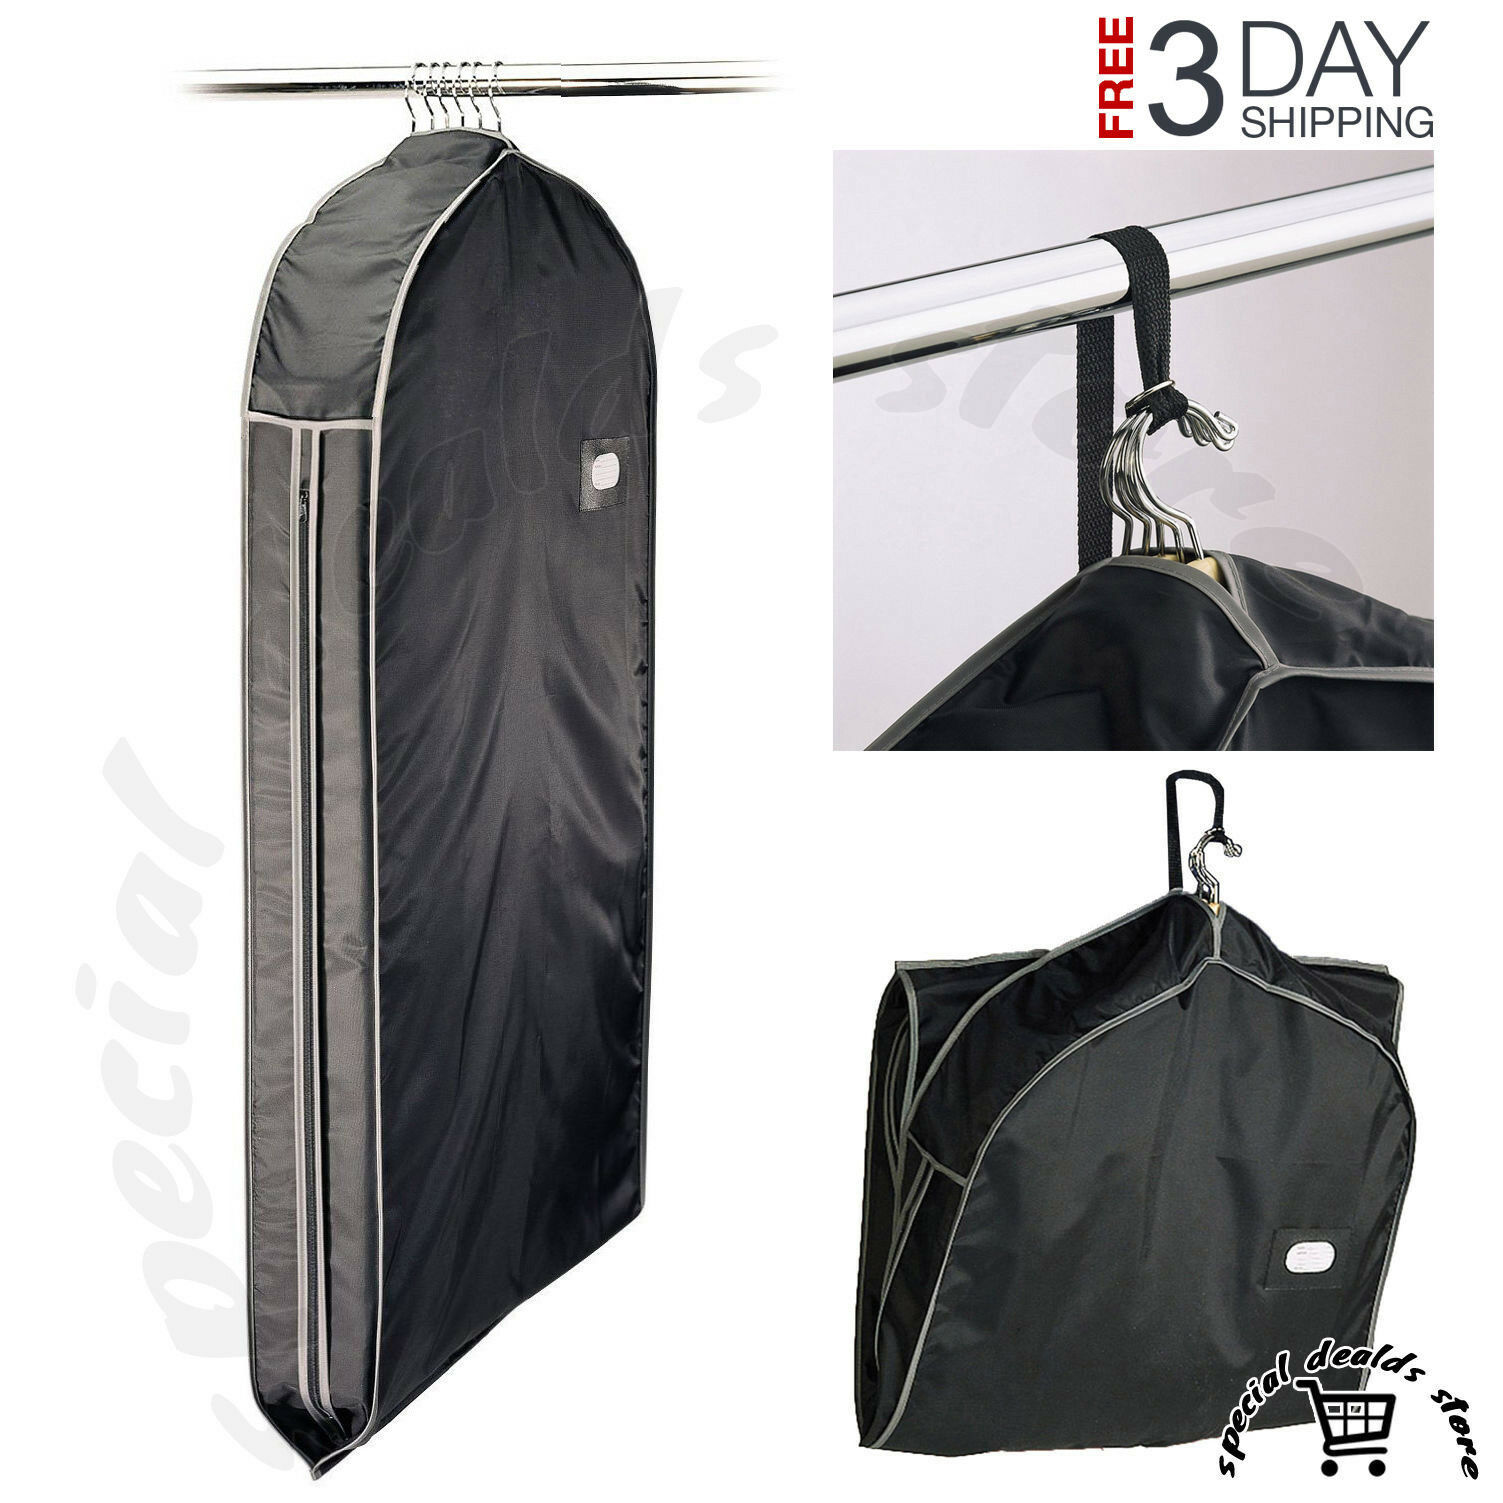 Richards Homewares Travel Five Gusset Suit Garment Cover